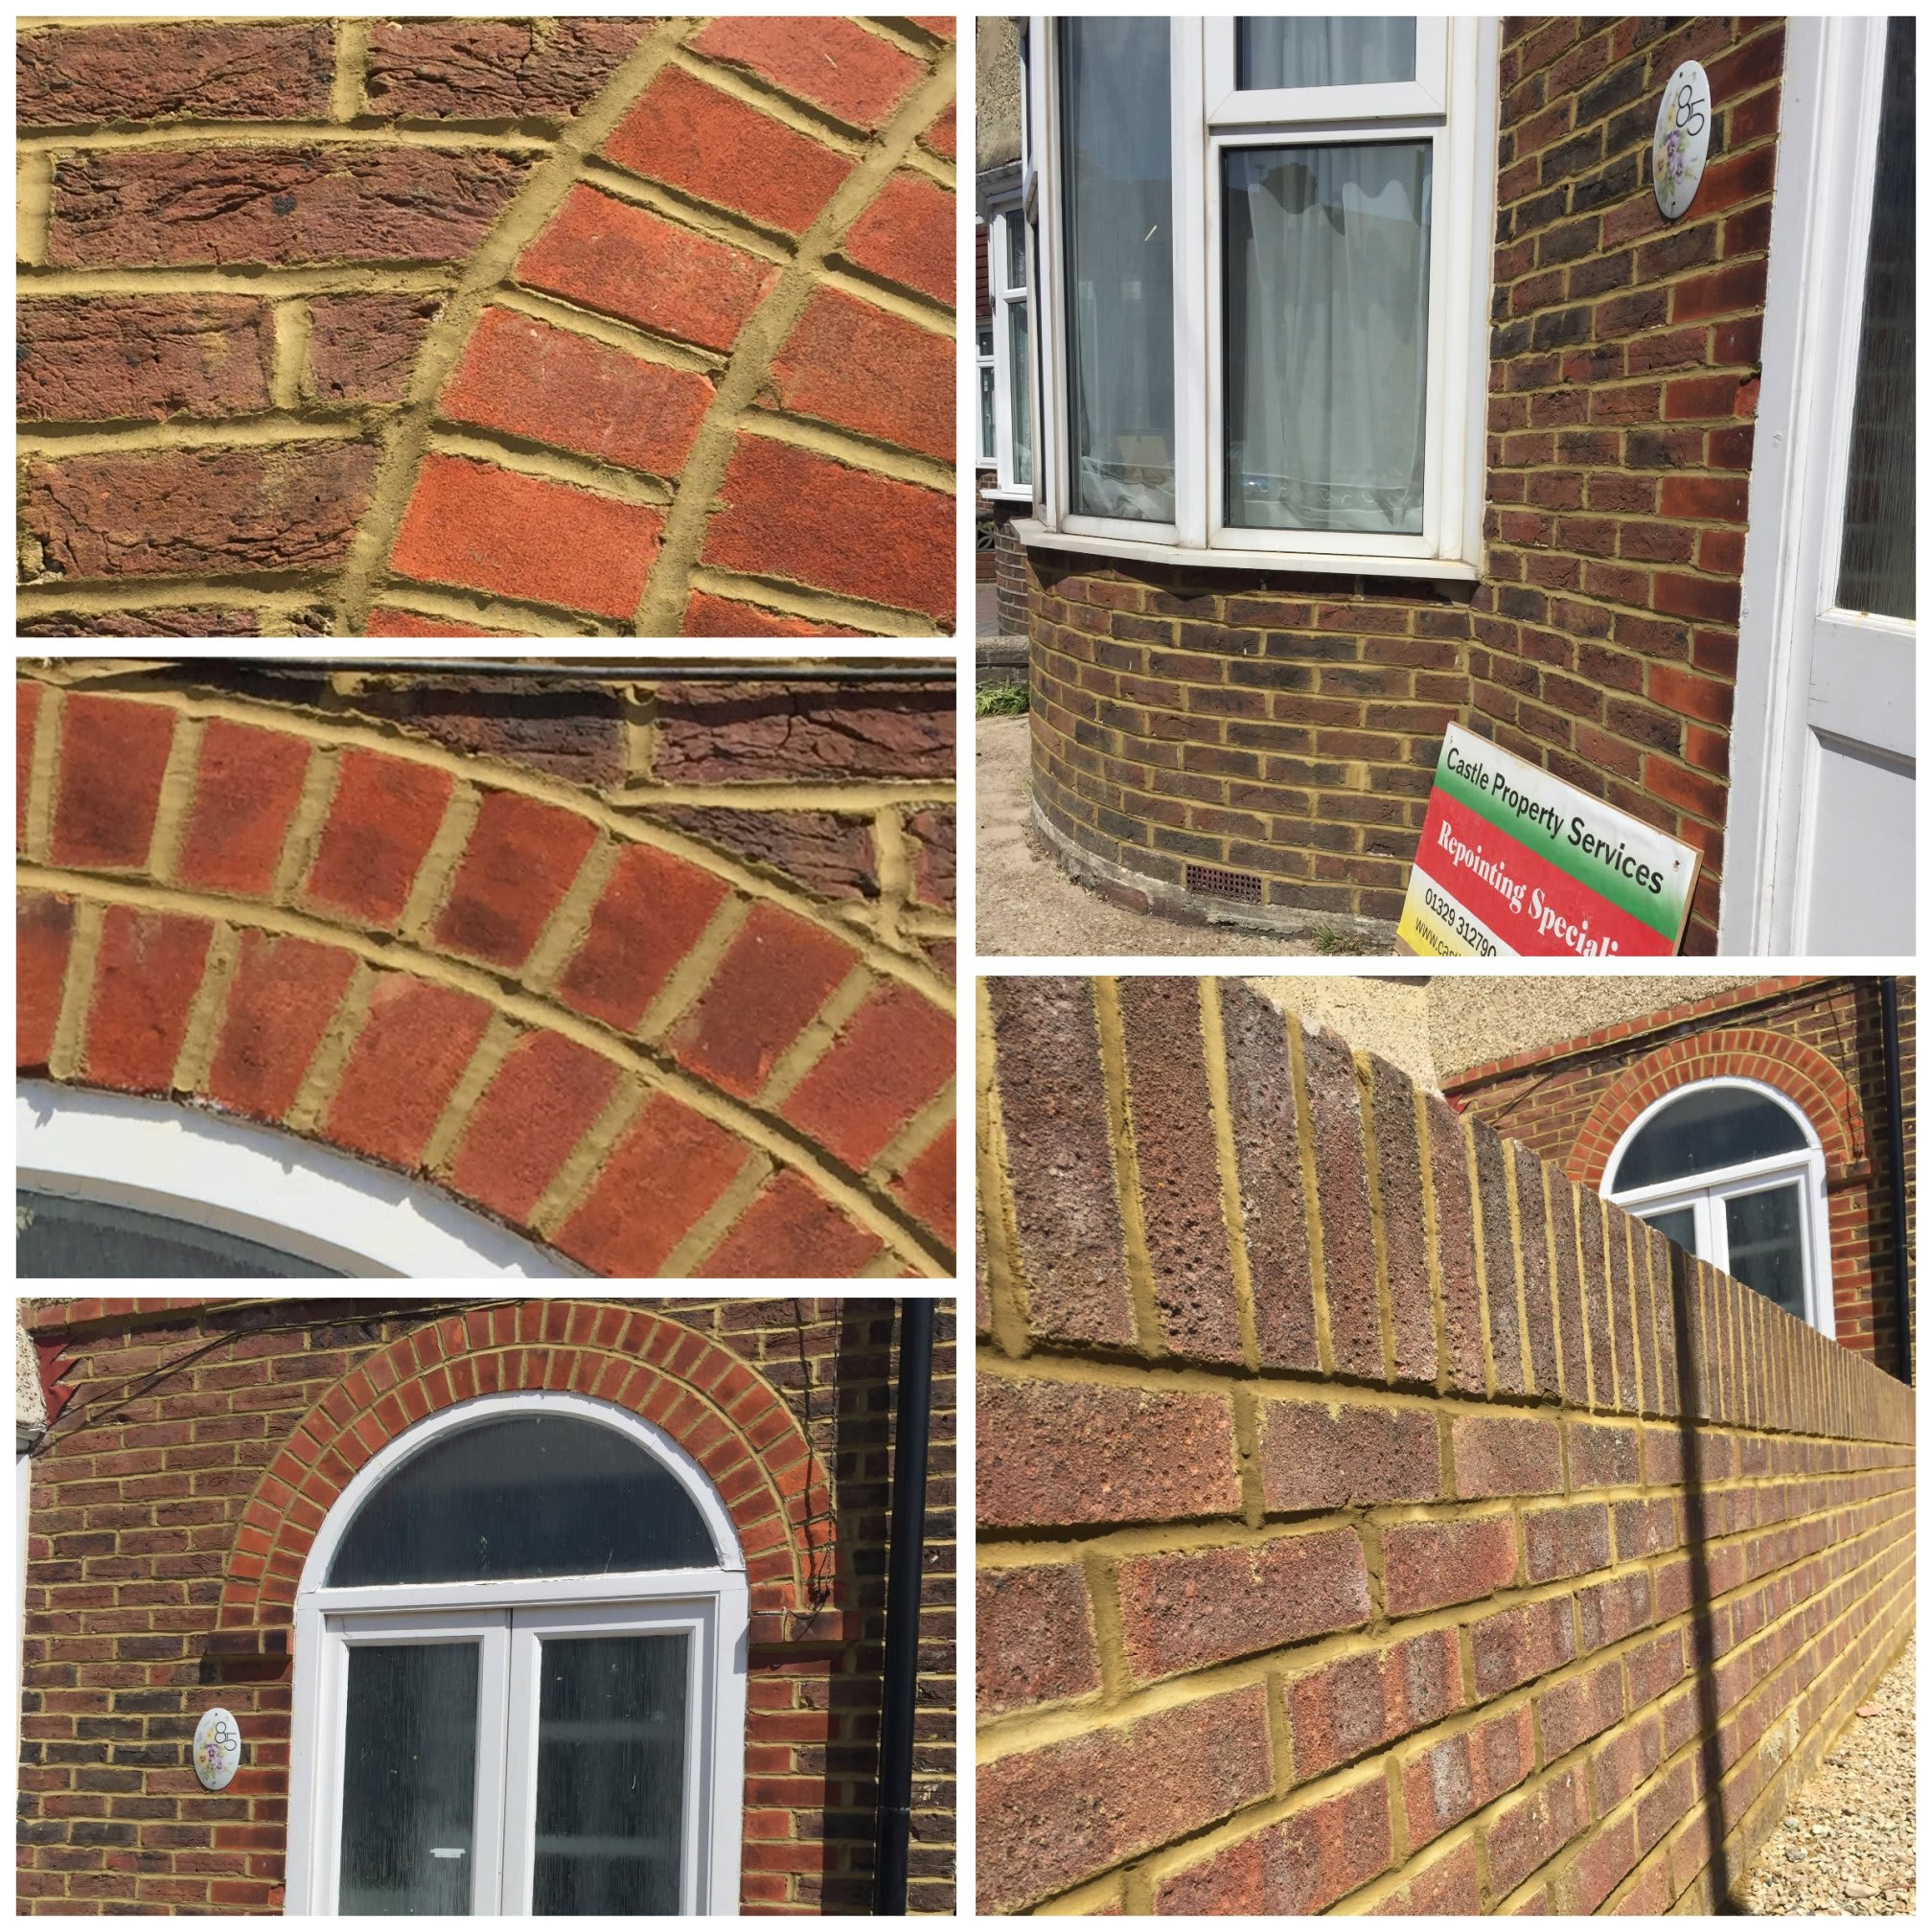 Castle Repointing Property Services - Gosport, Hampshire  - 02392 513113 | ShowMeLocal.com